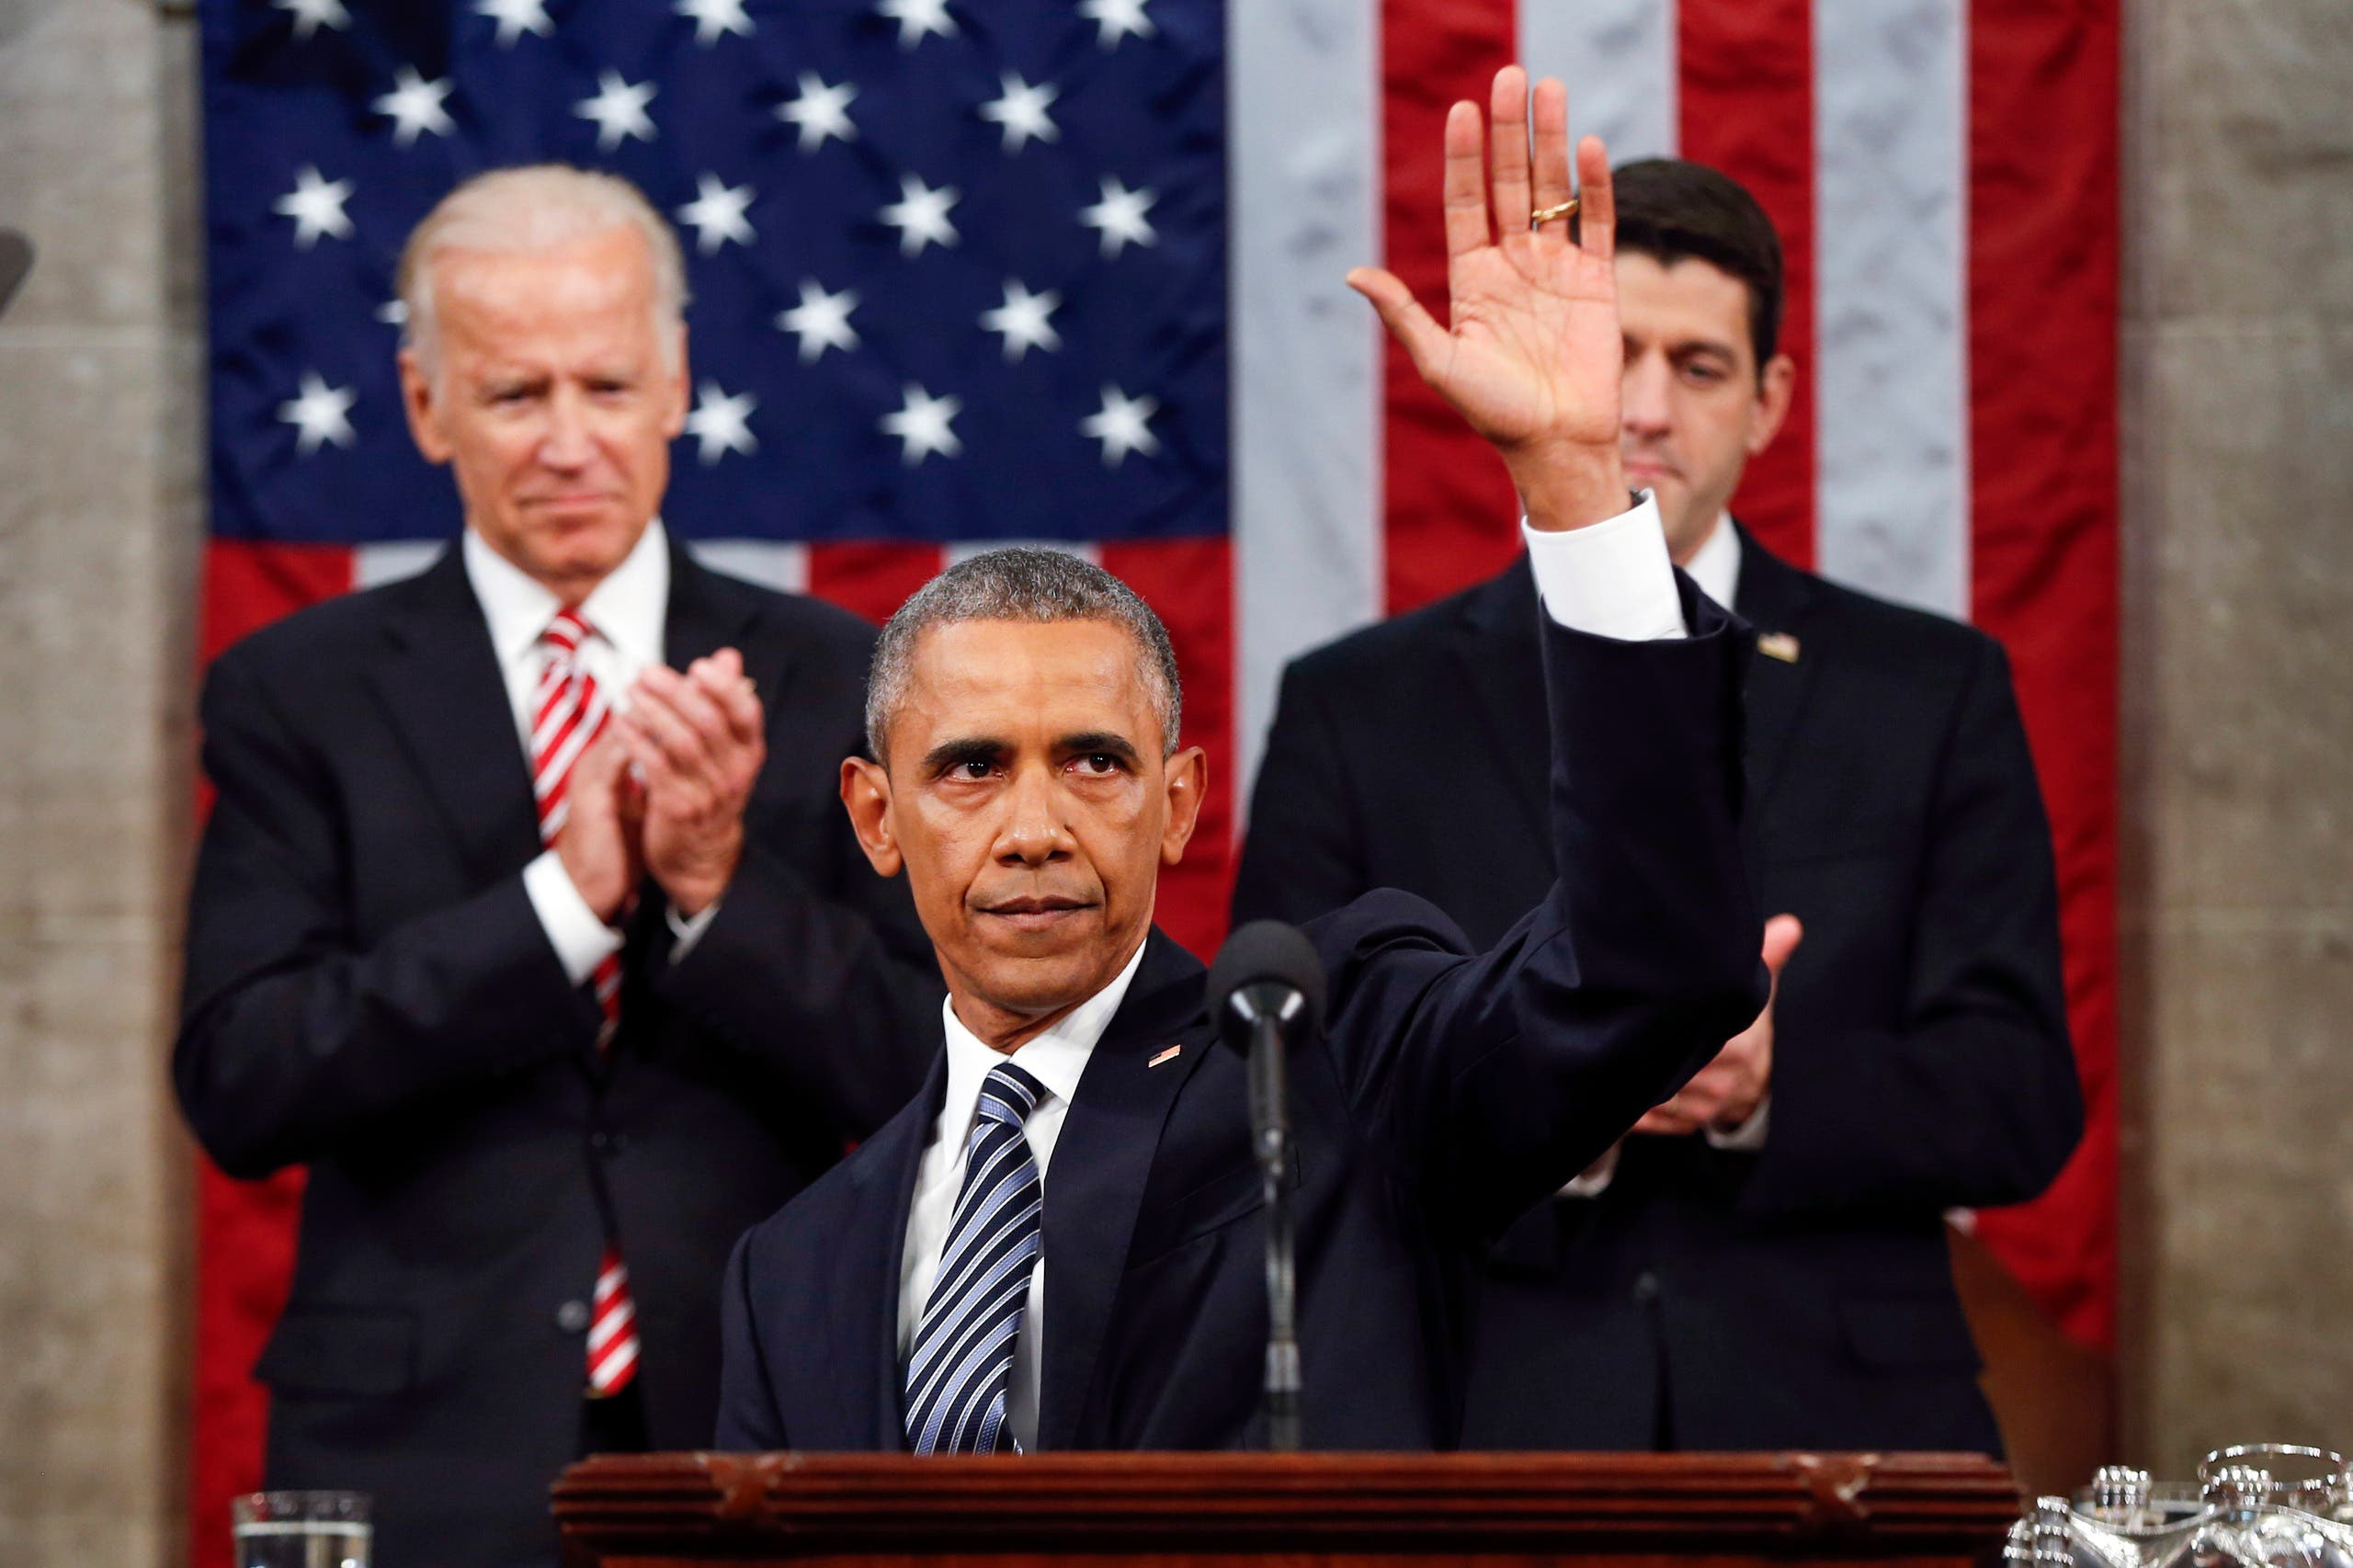 Obama's final State of the Union